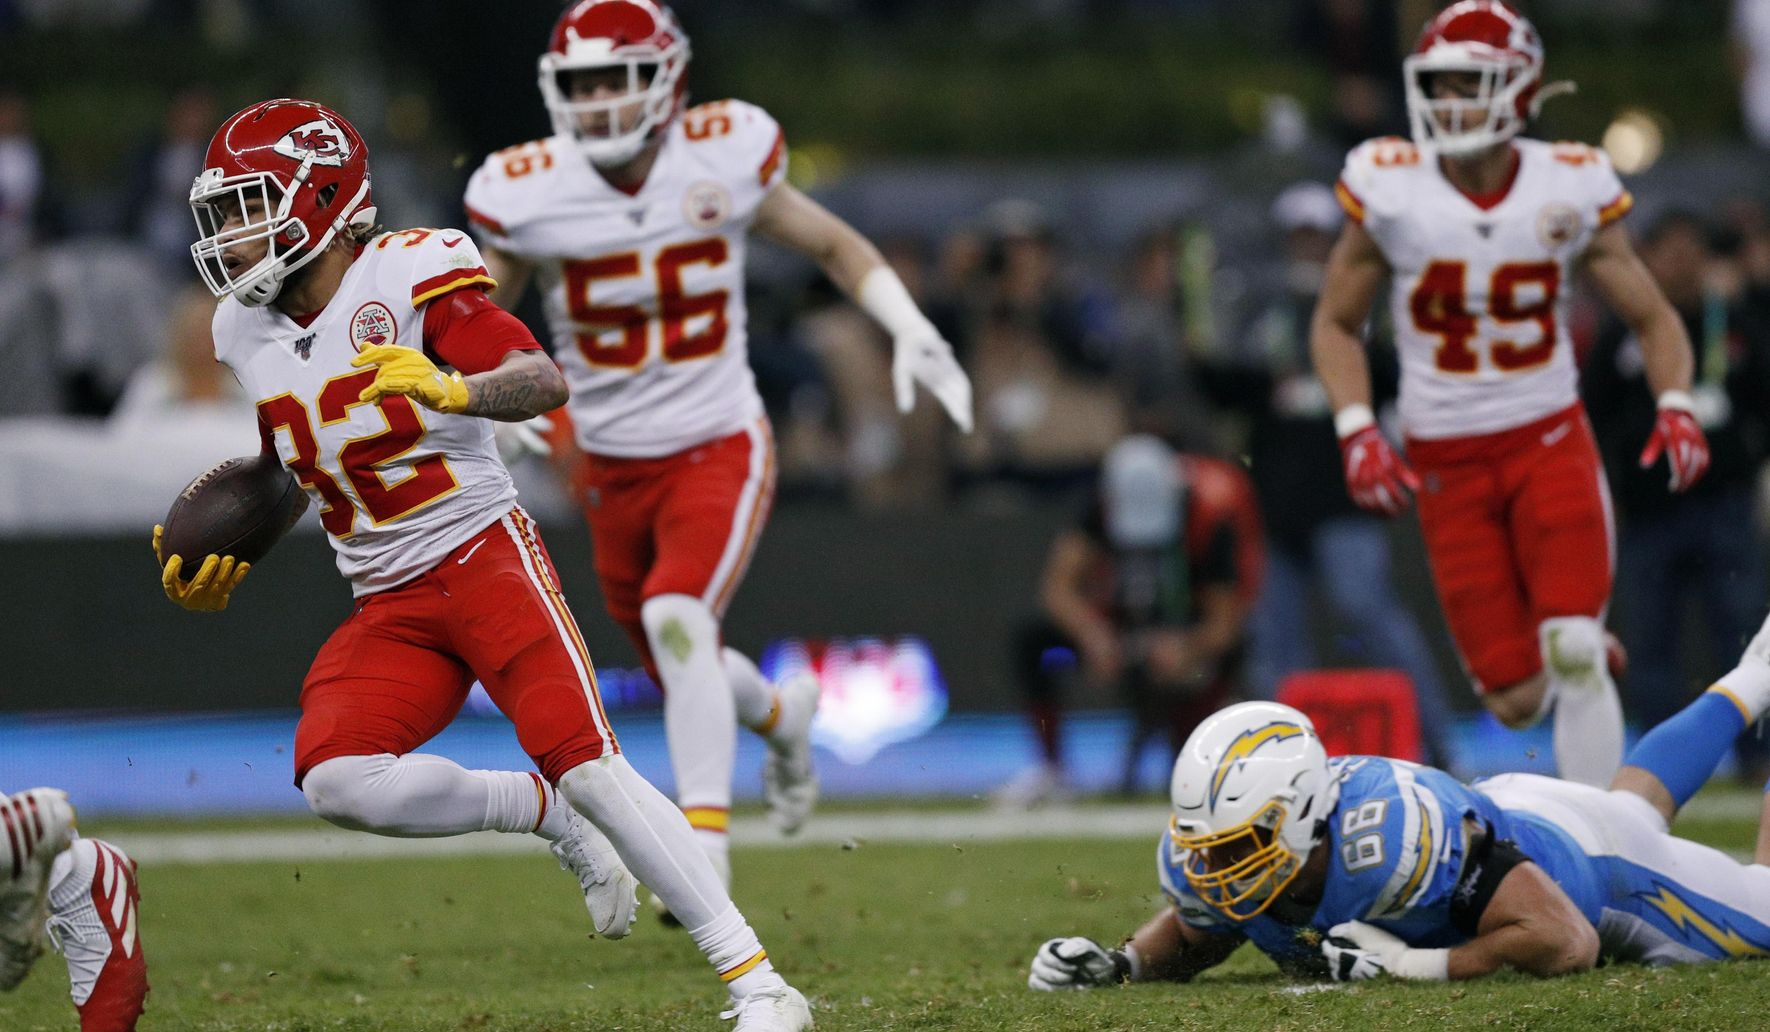 Mexico_chiefs_chargers_football_57618_c0-194-4630-2893_s1770x1032